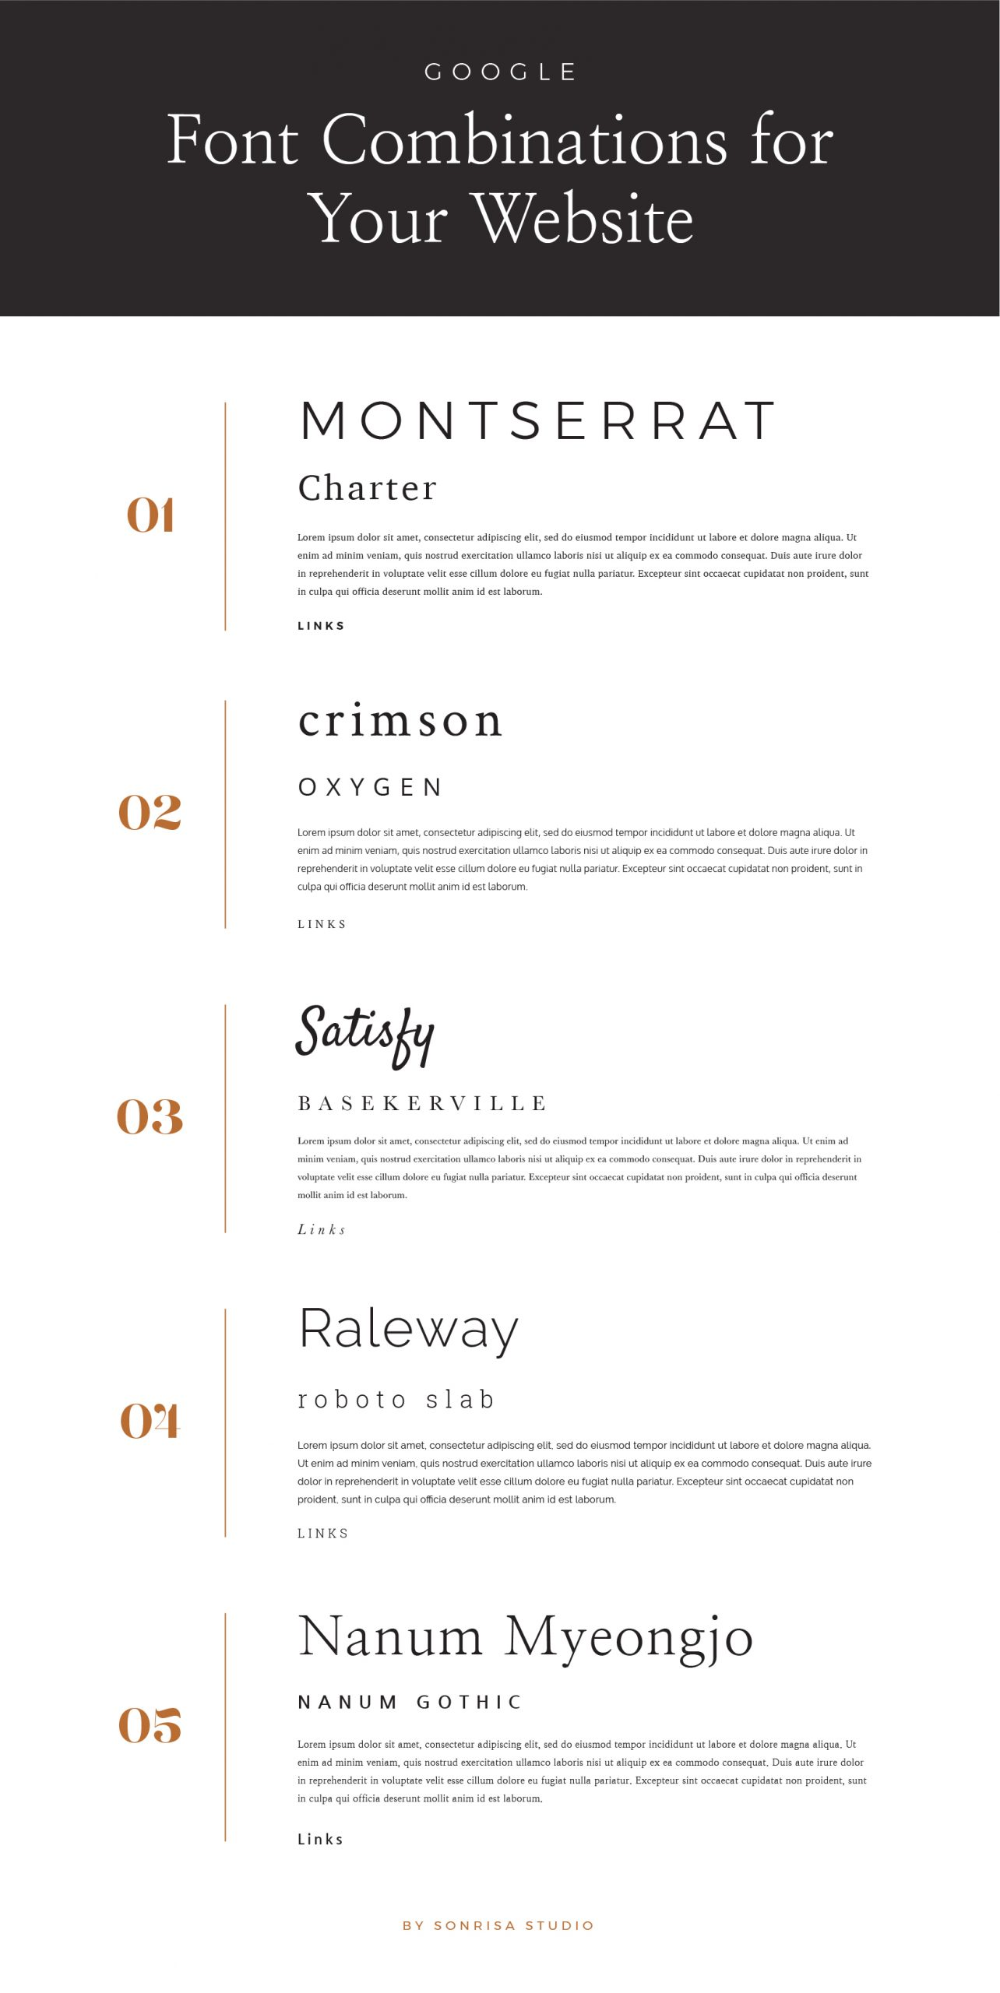 Google Font Pairings For Your Website Sonrisastudio Com In 2020 Google Font Pairings Font Pairing Font Combinations